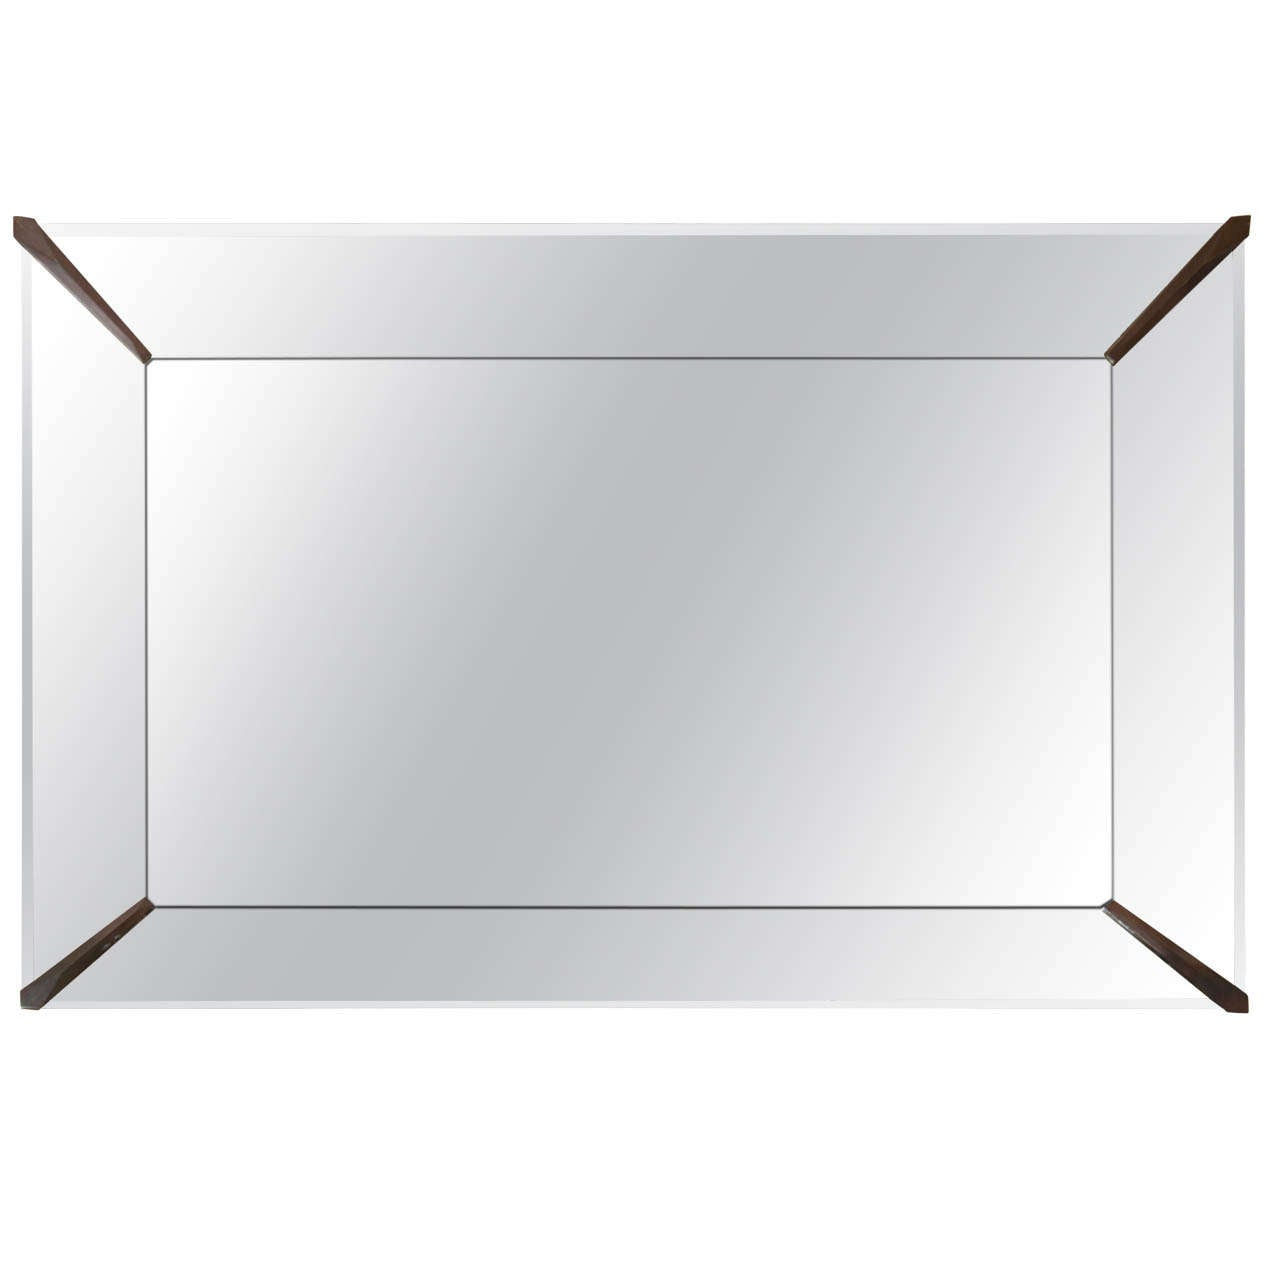 a mid century rectangular mirror with mirrored frame brass detail 1